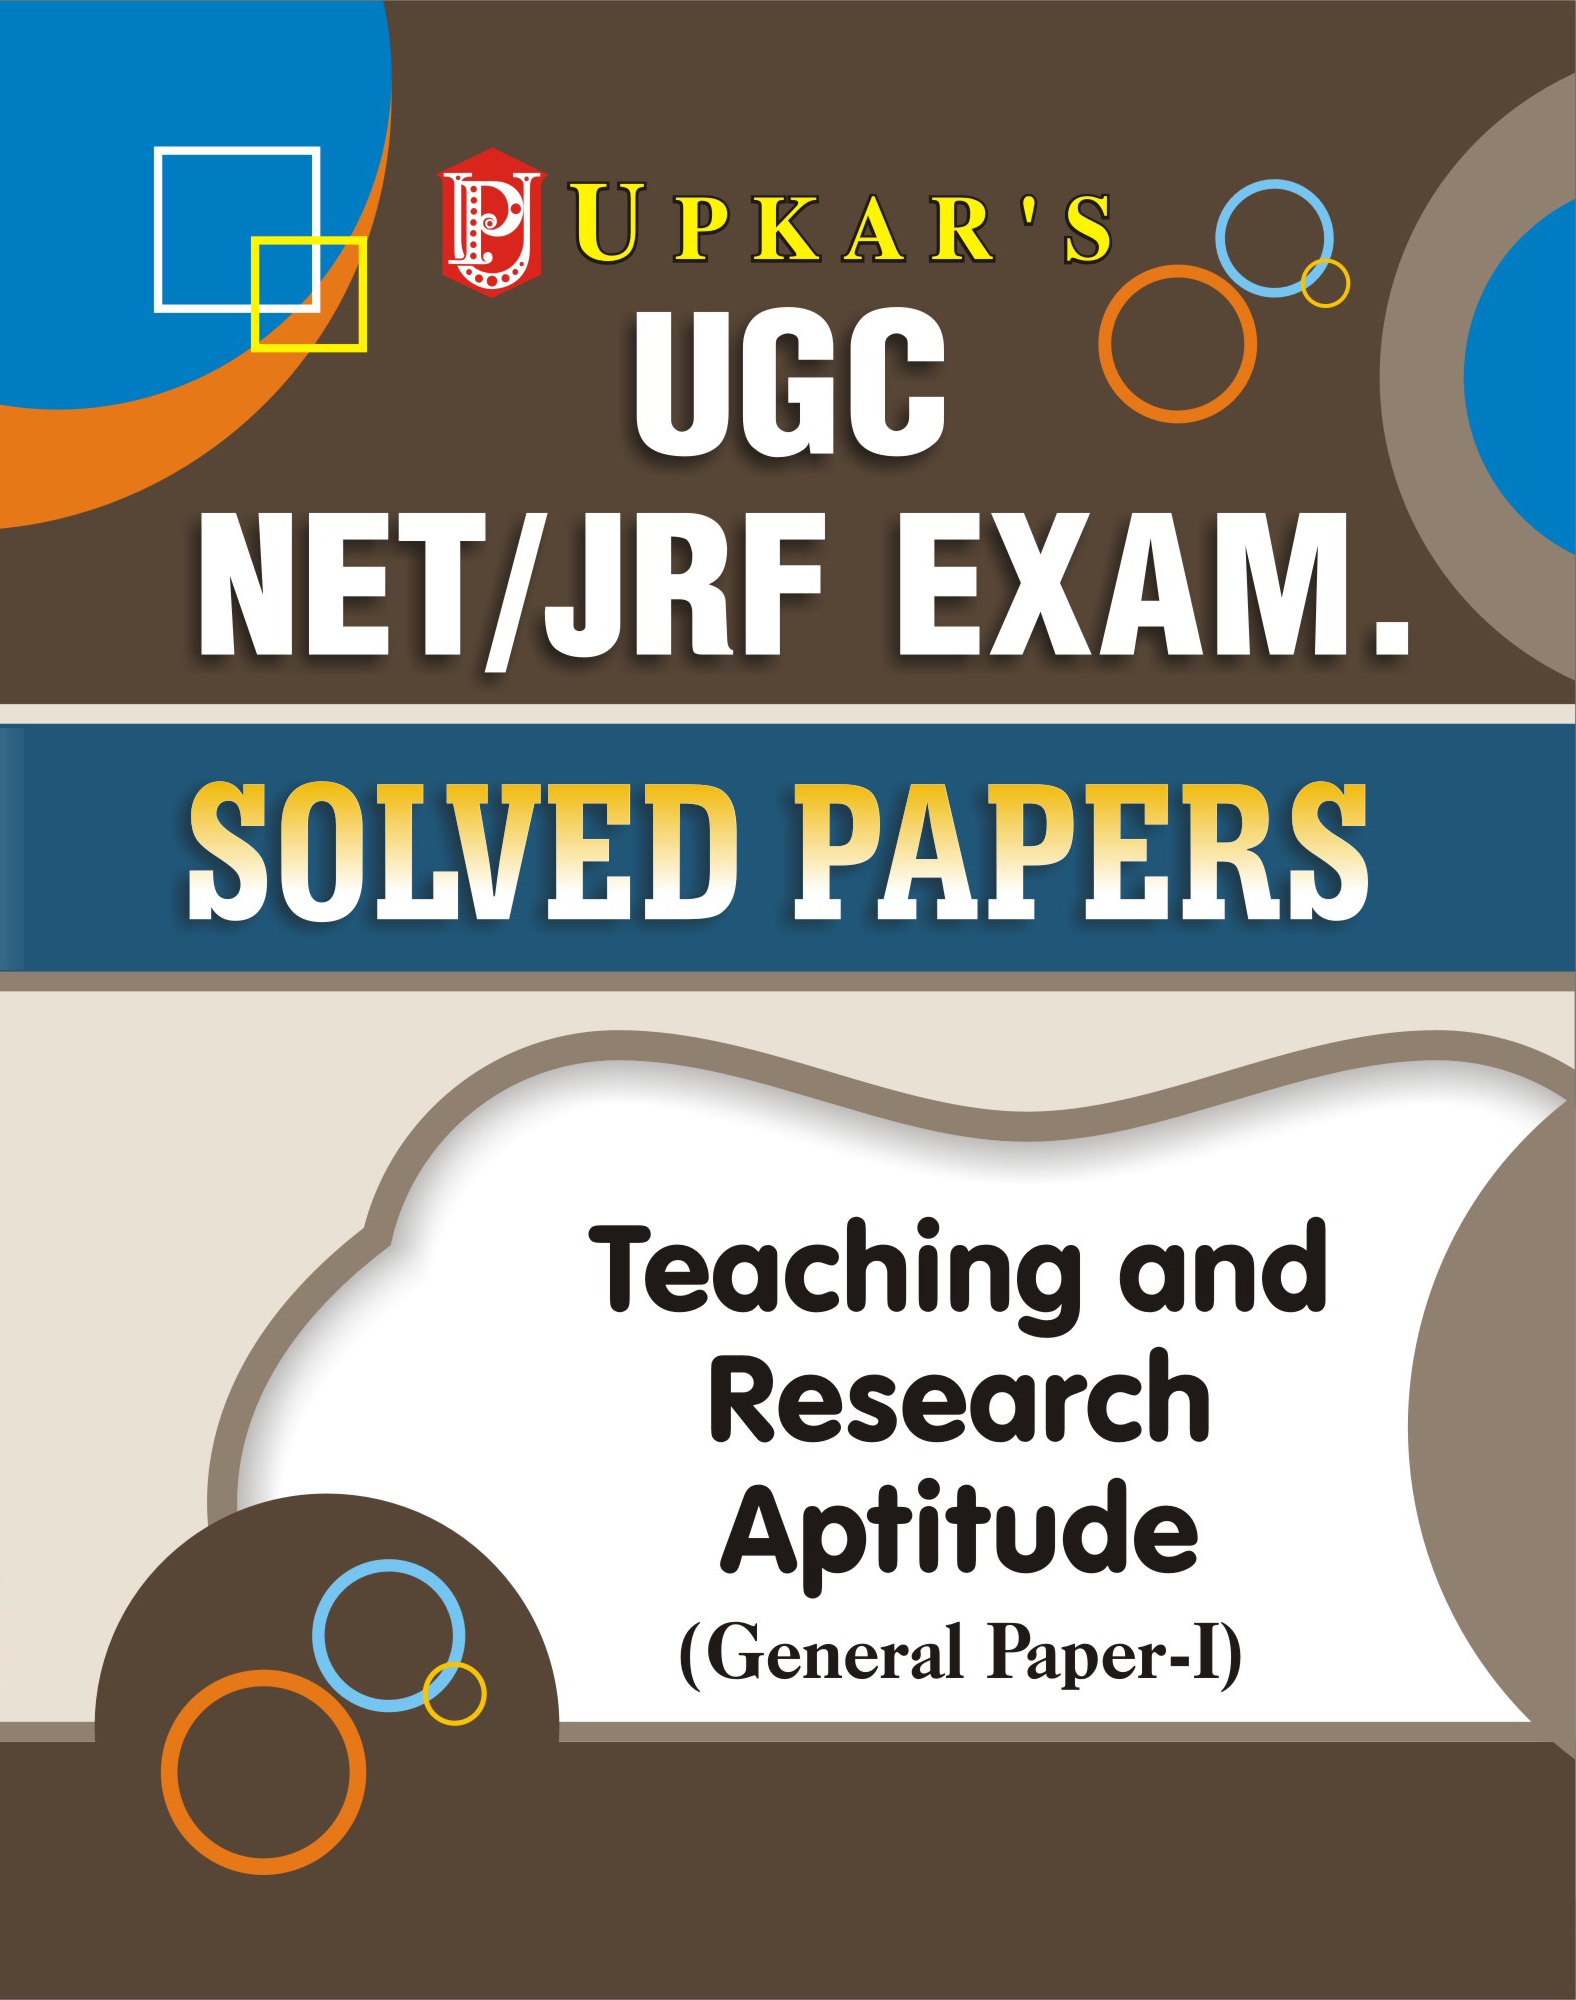 UGC NET June 2013 Paper 1: General Paper on Teaching and Research Aptitude: Model Practice Paper